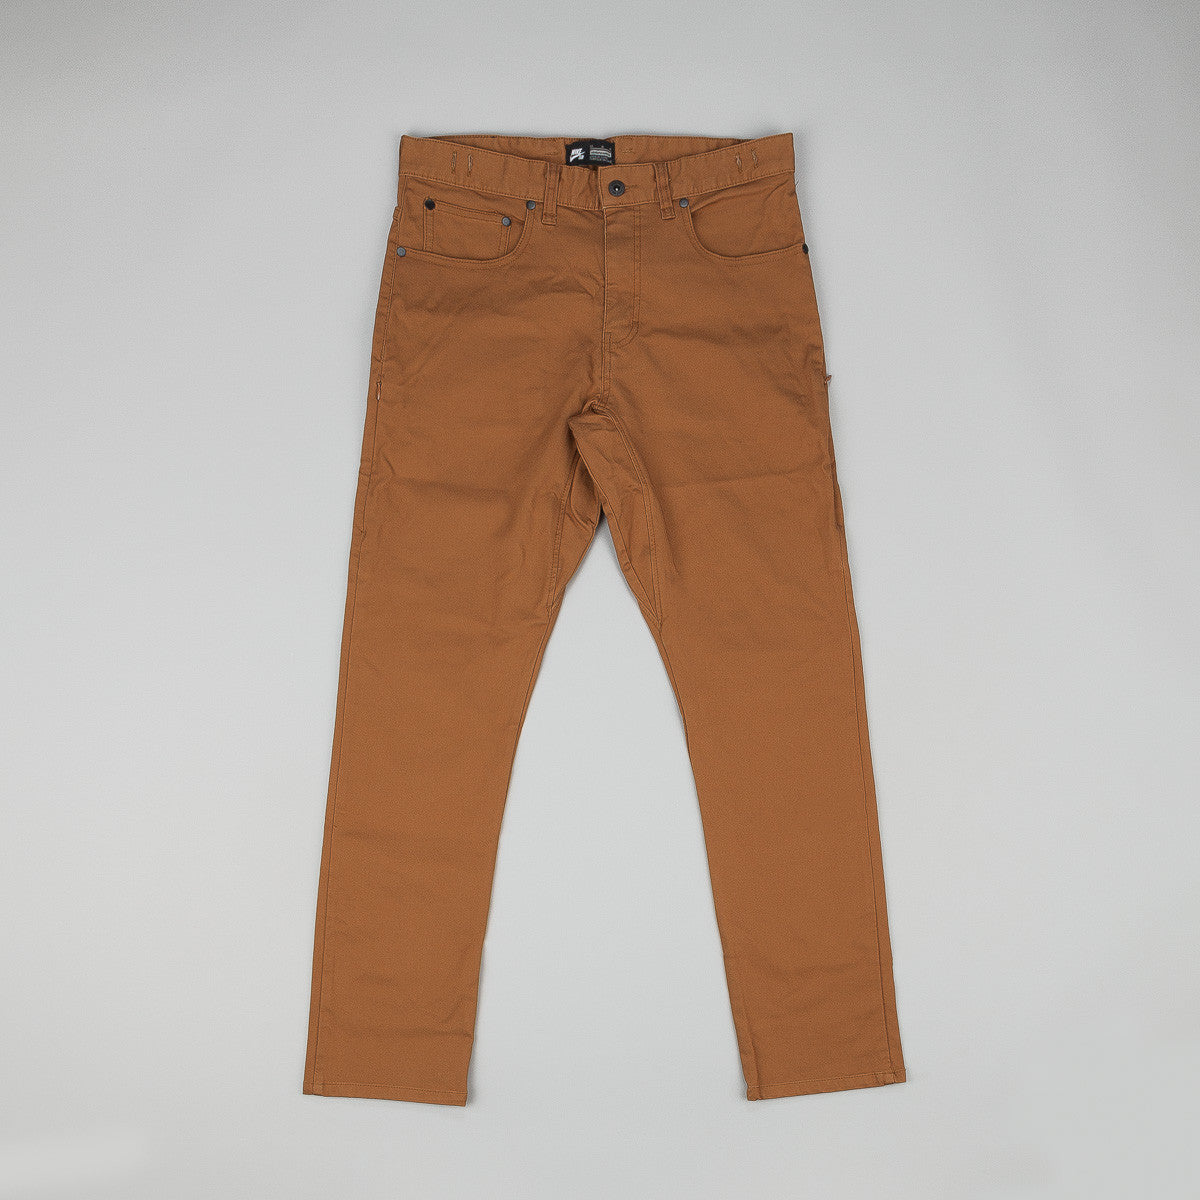 Nike SB FTM 5 Pocket Trousers